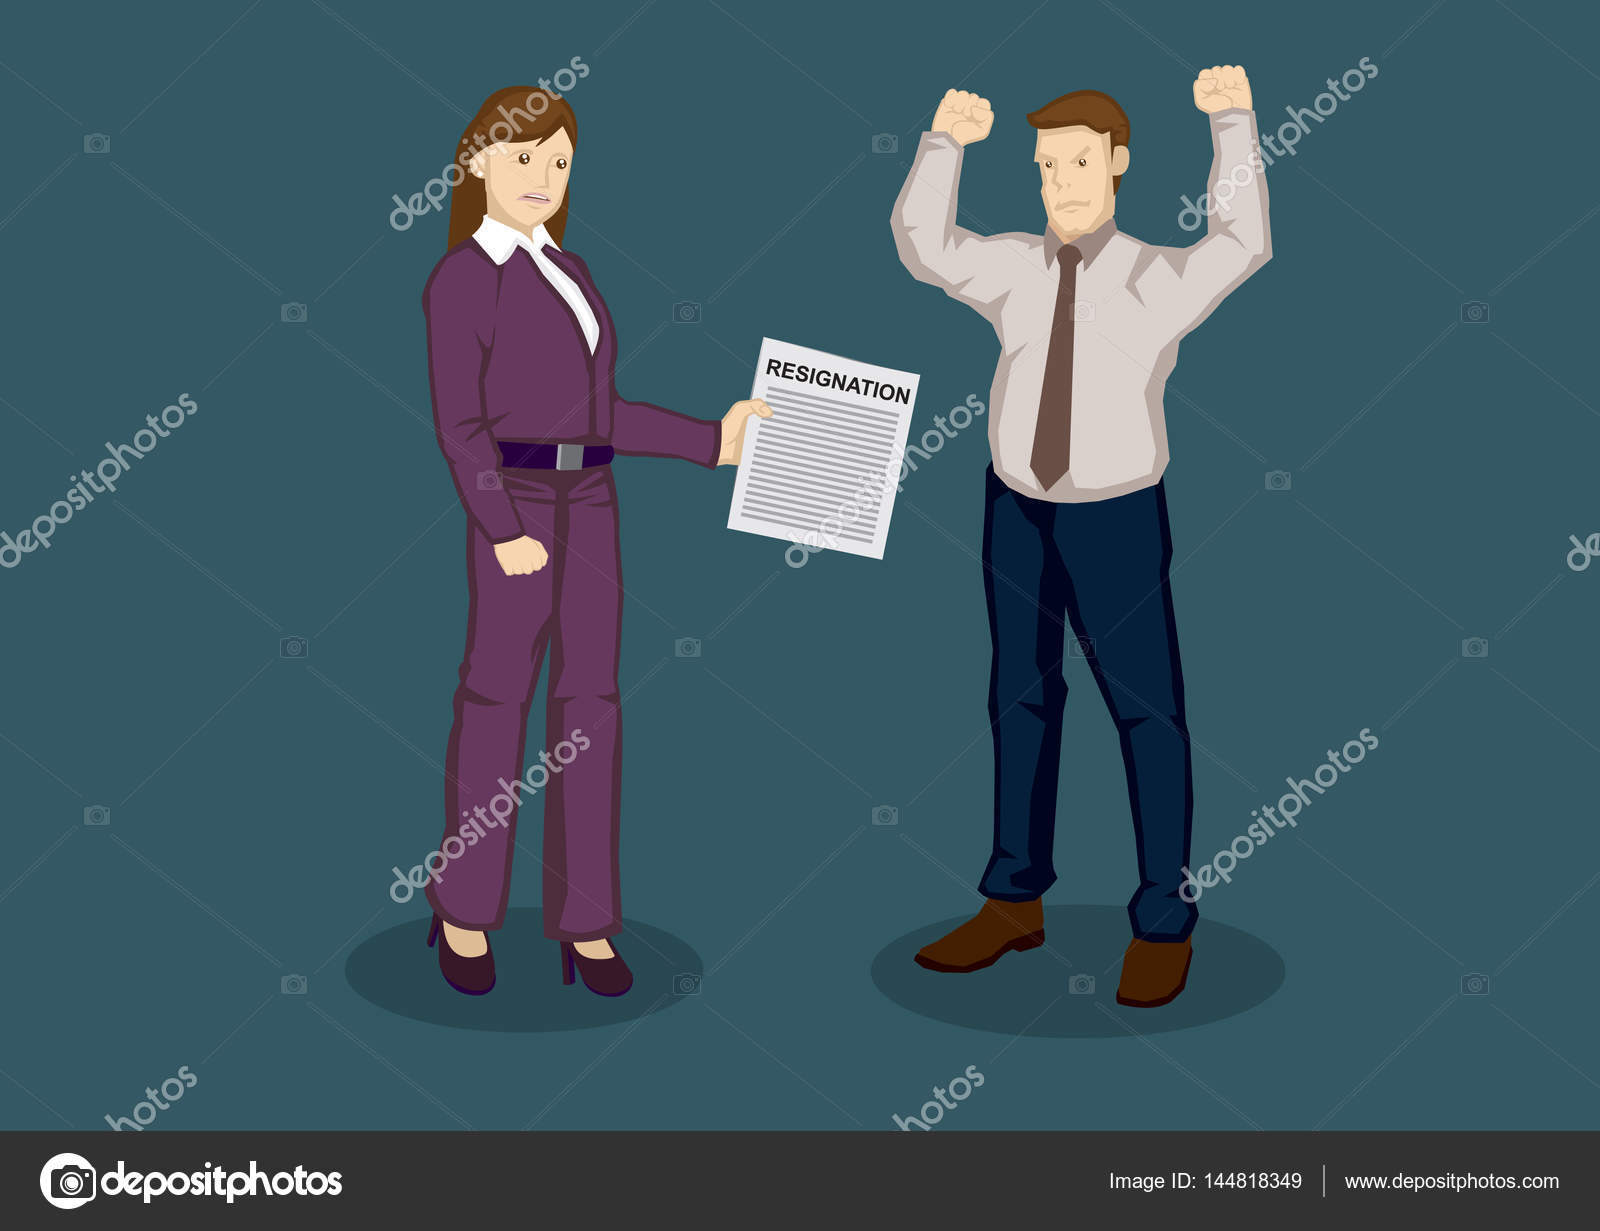 tender letter of resignation cartoon vector illustration stock tender letter of resignation cartoon vector illustration stock vector 144818349